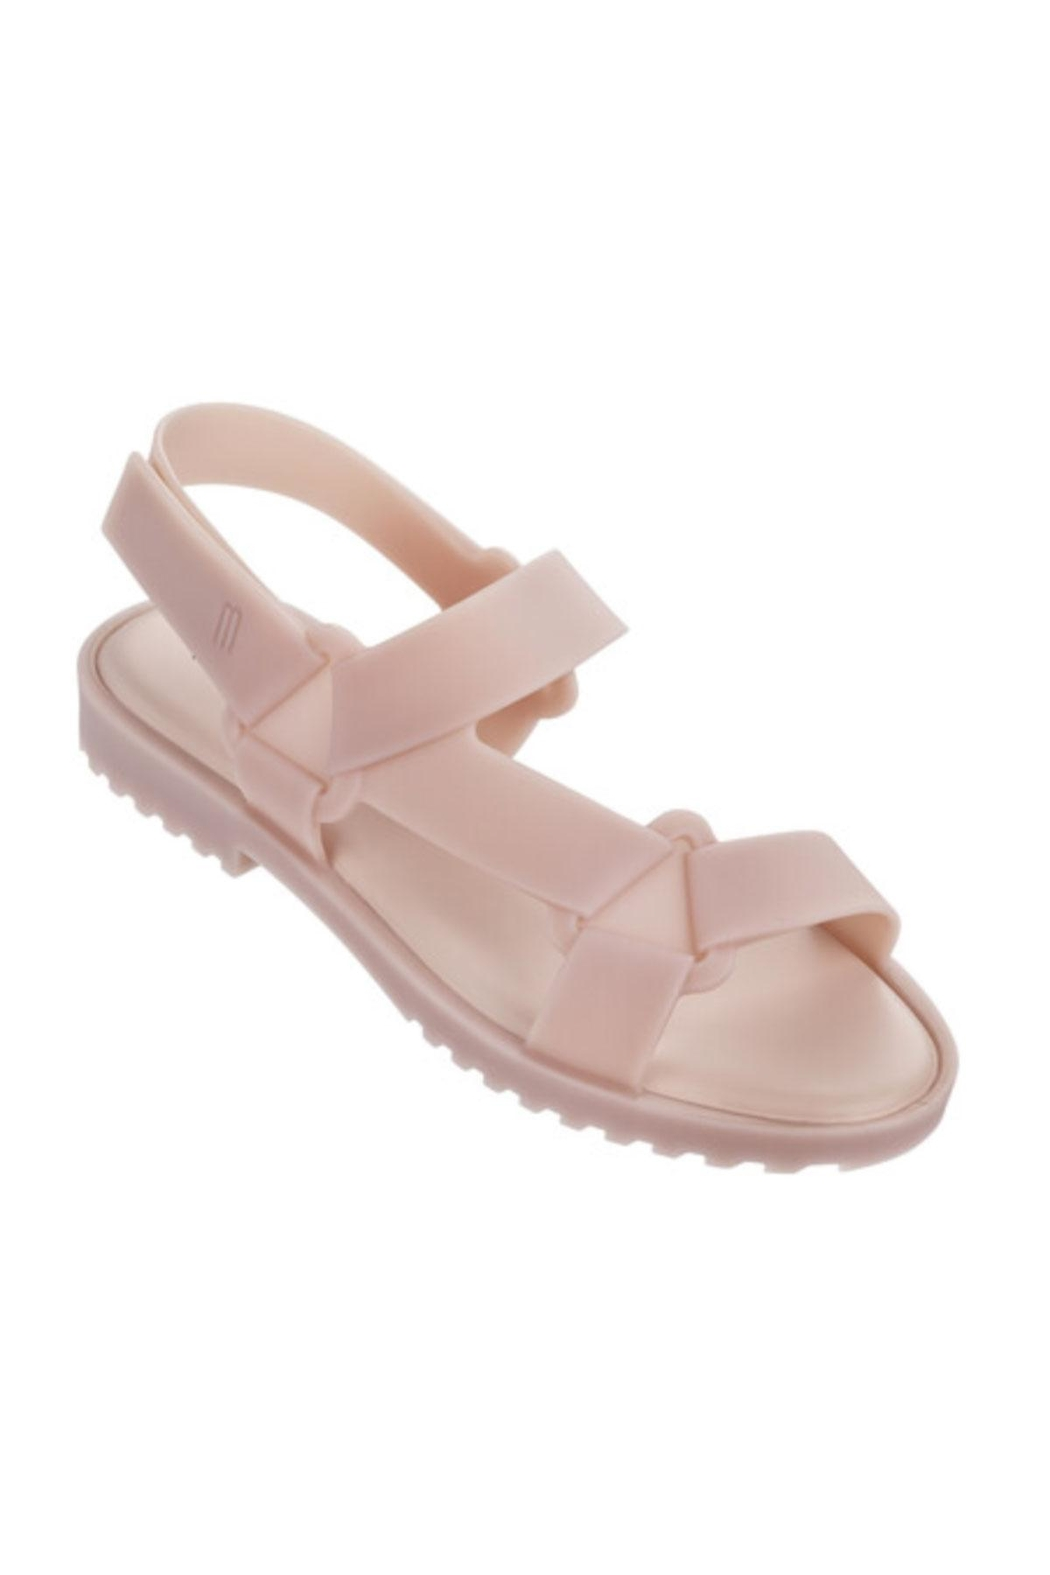 Melissa Connected Sandal Pink - Main Image